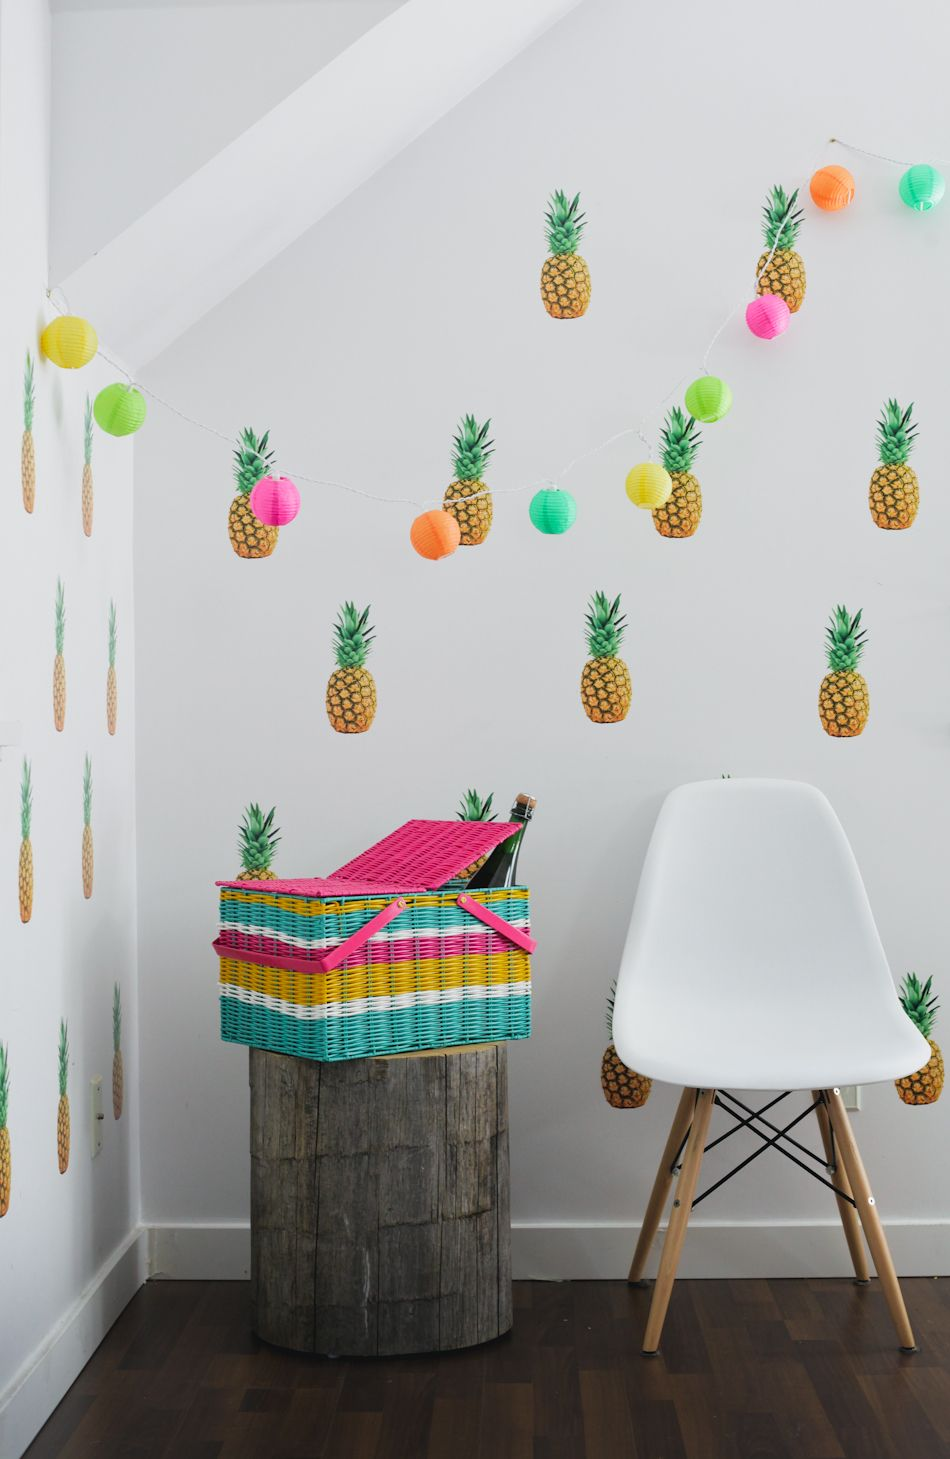 Pineapple Wall Decals Oh Joy For Target Decor Pinterest - Vinyl wall decals at targetwall decor stickers target